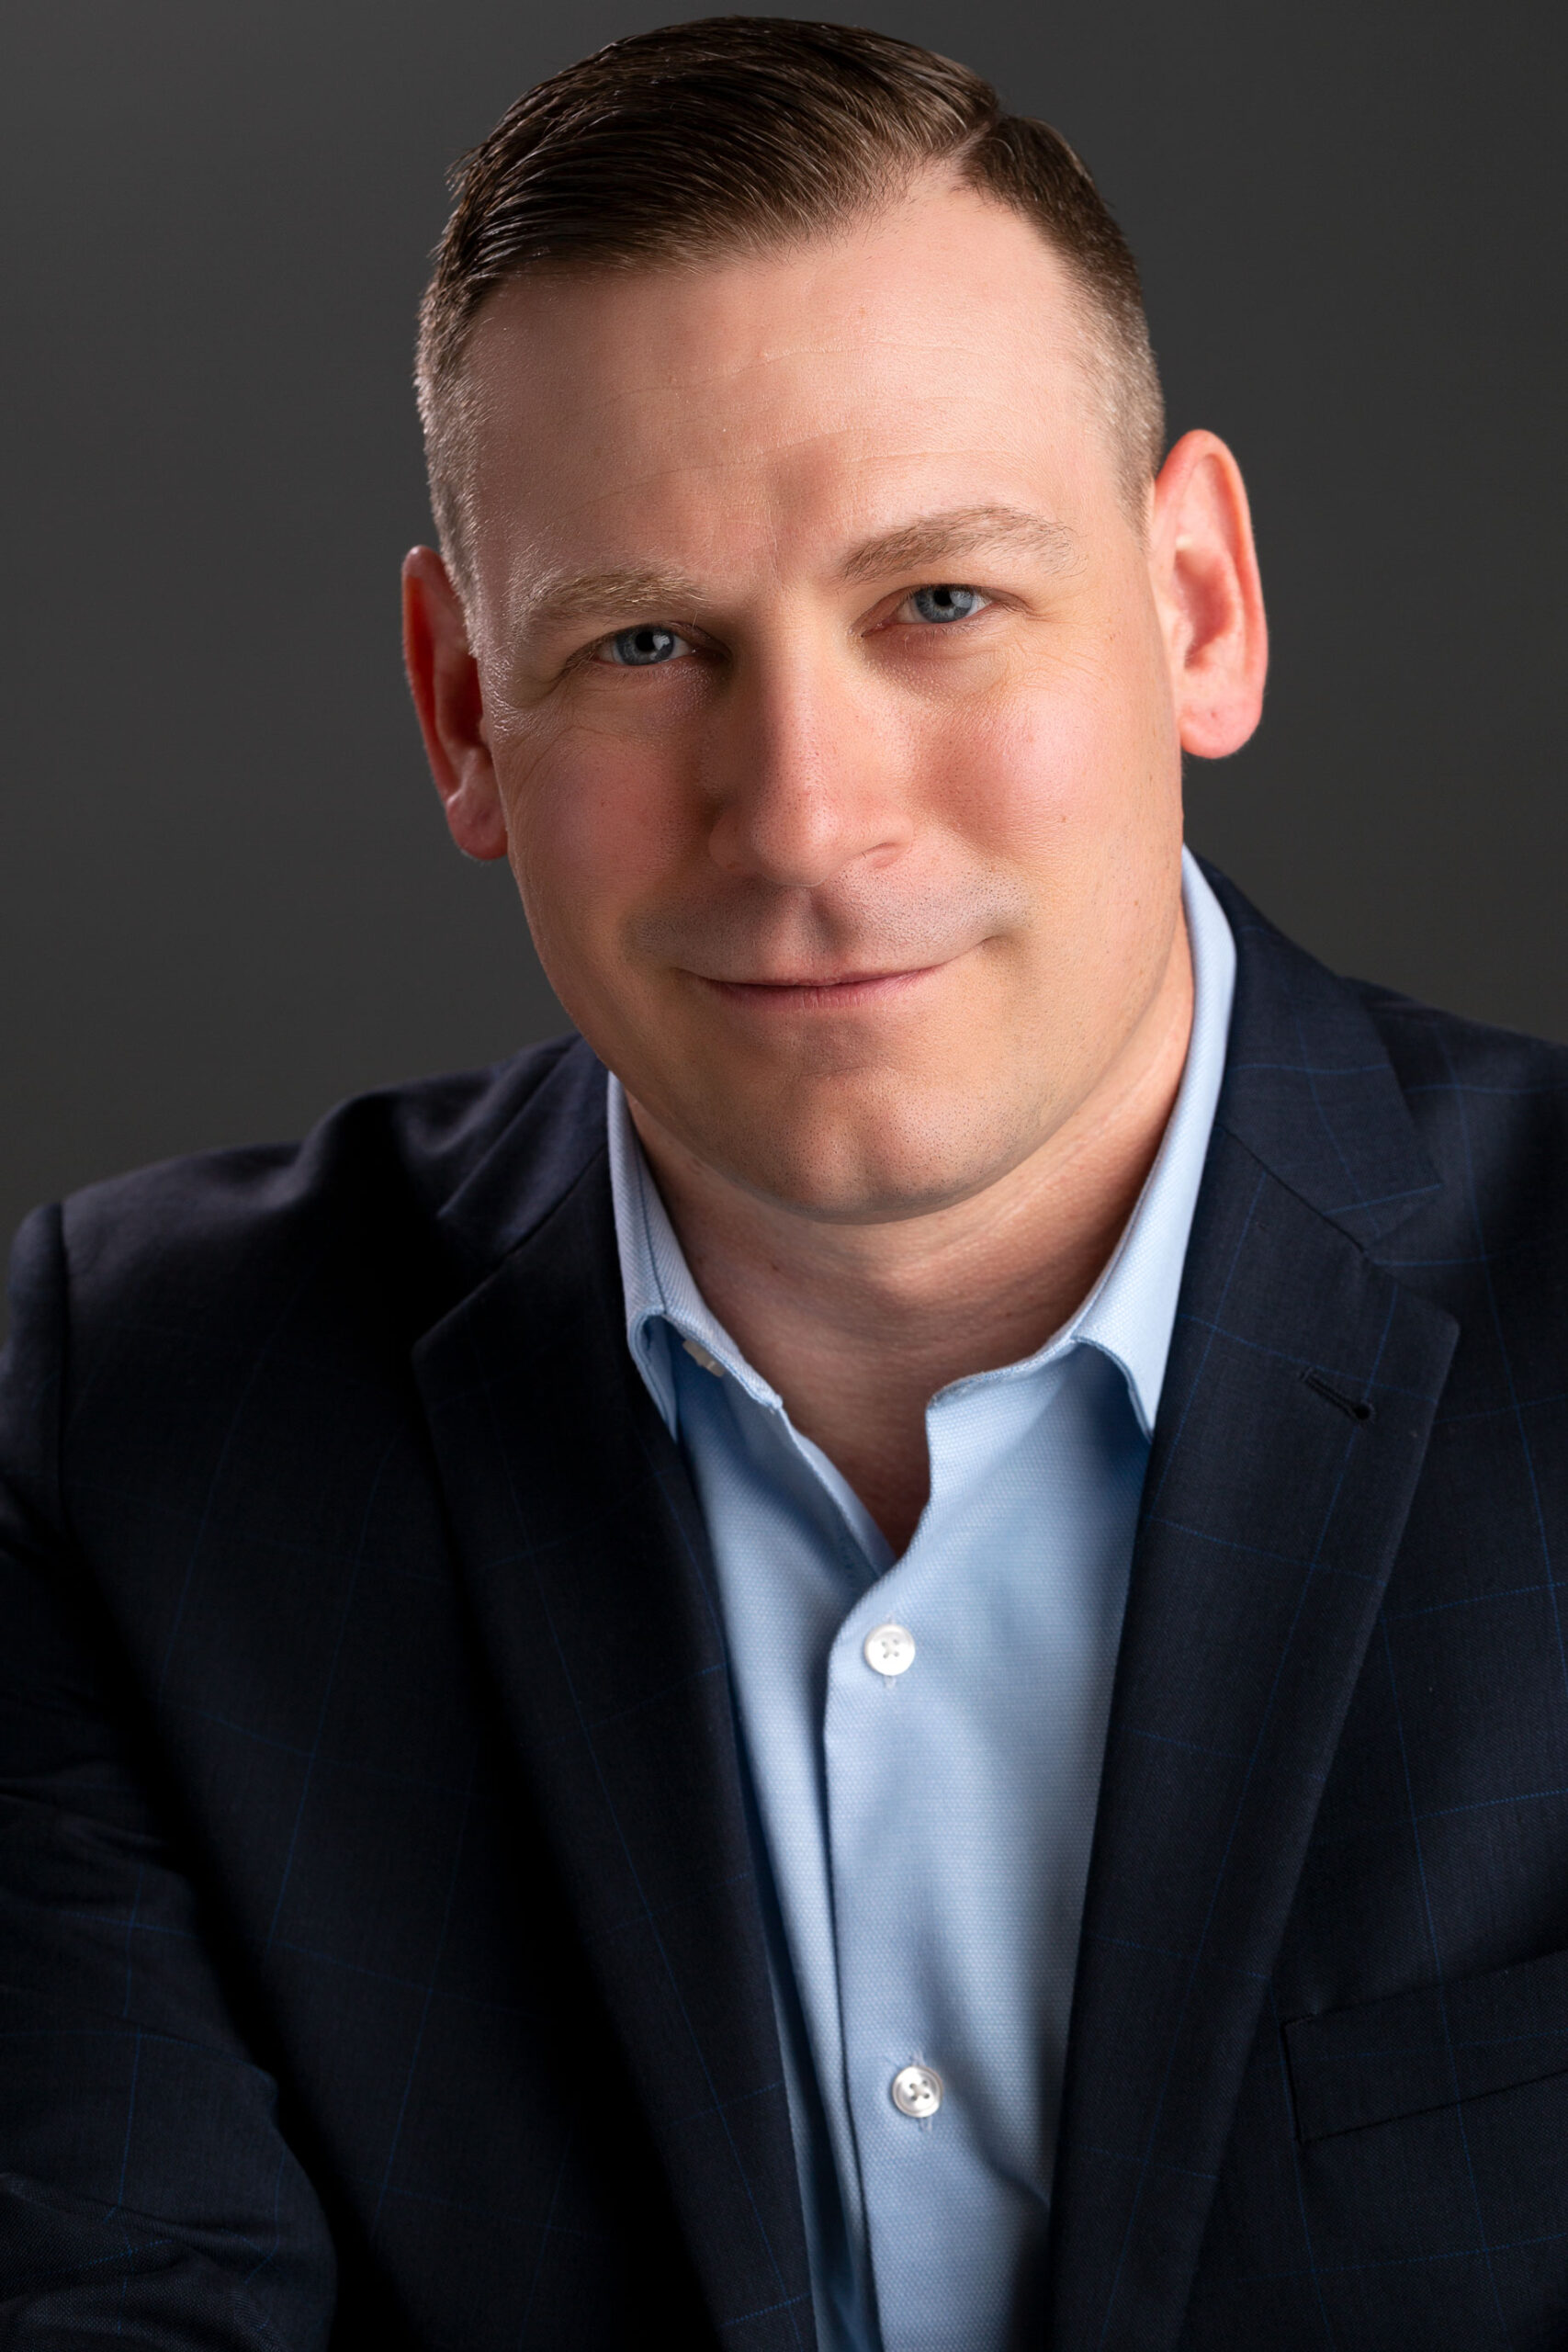 Headshot of a man in casual business attire